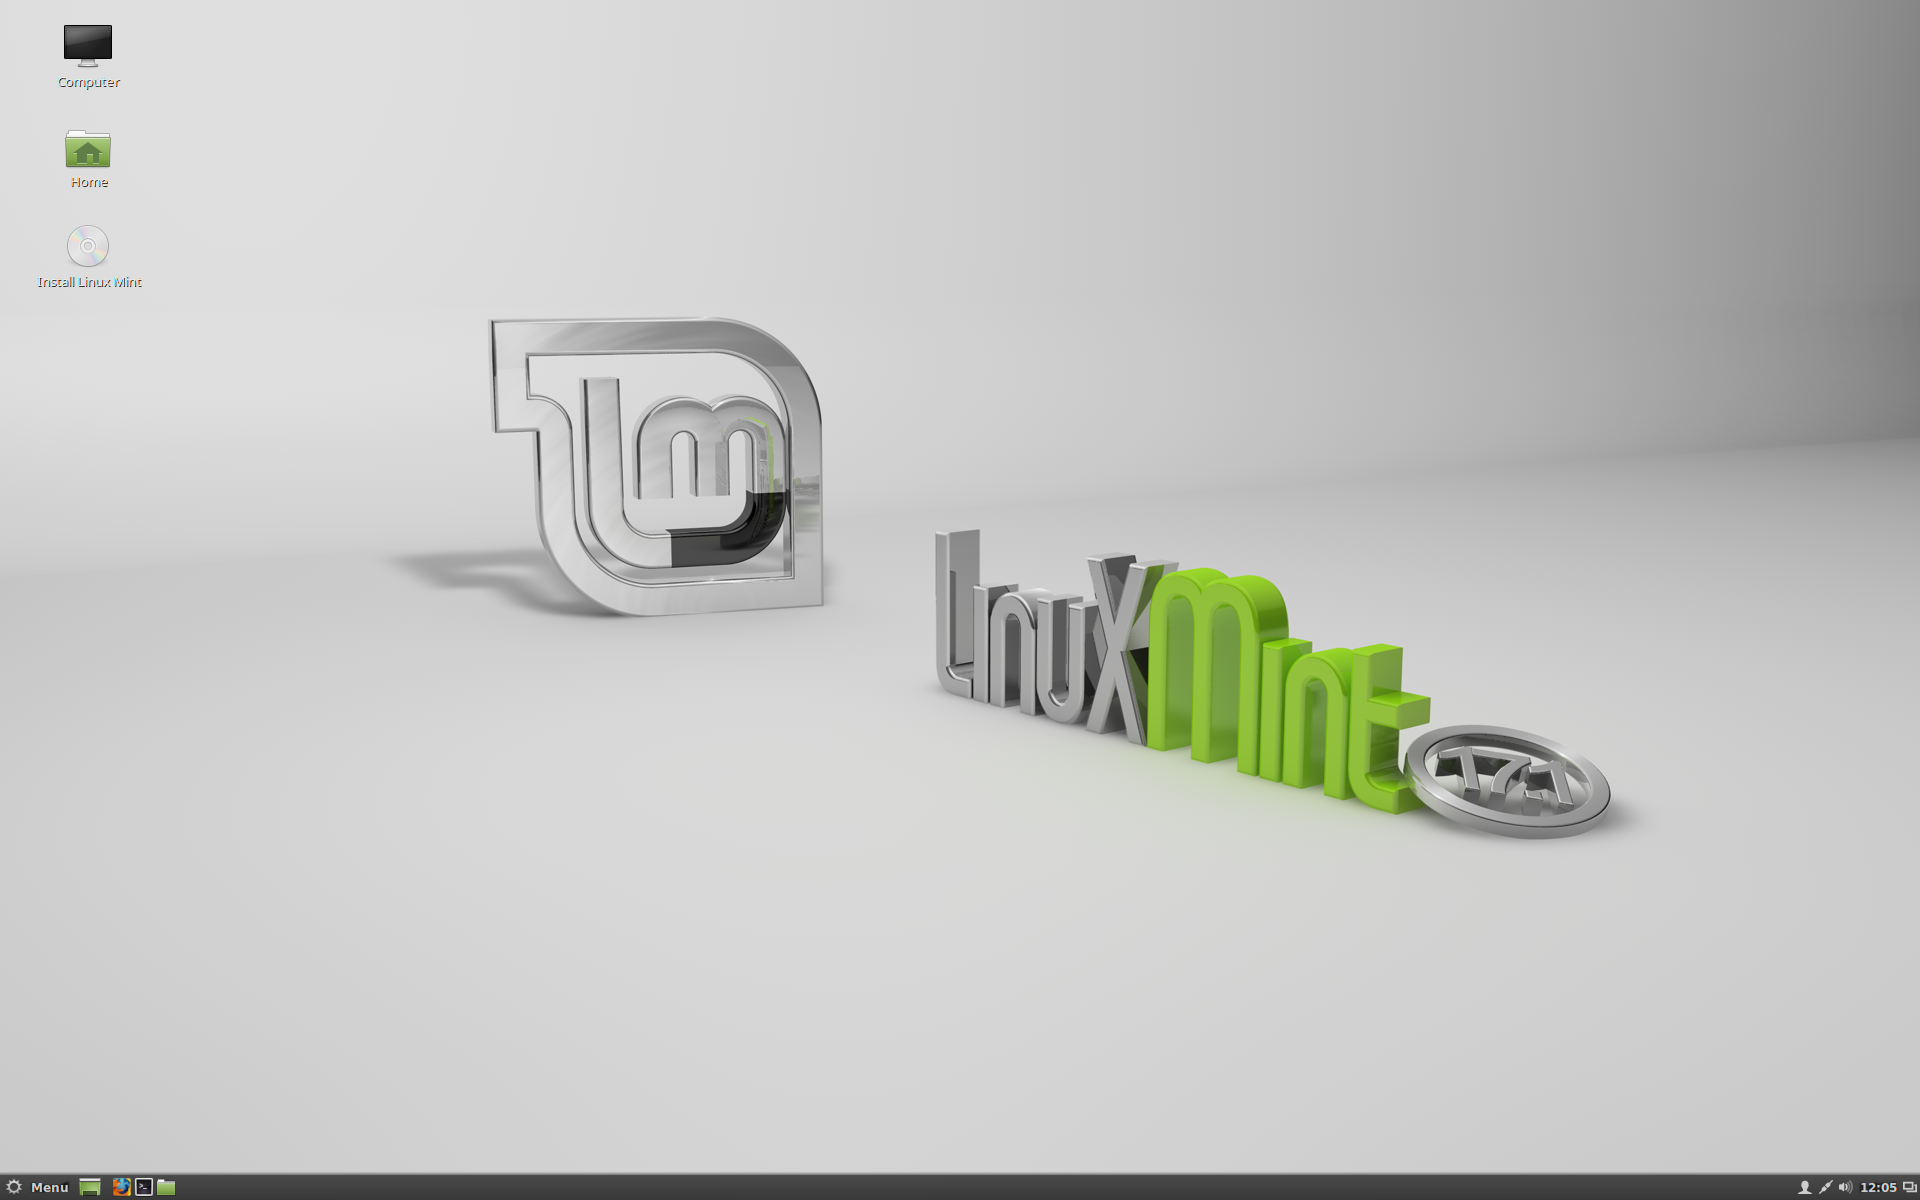 Tämä on Linux Mint 17.1 Cinnamon, koodinimi Rebecca